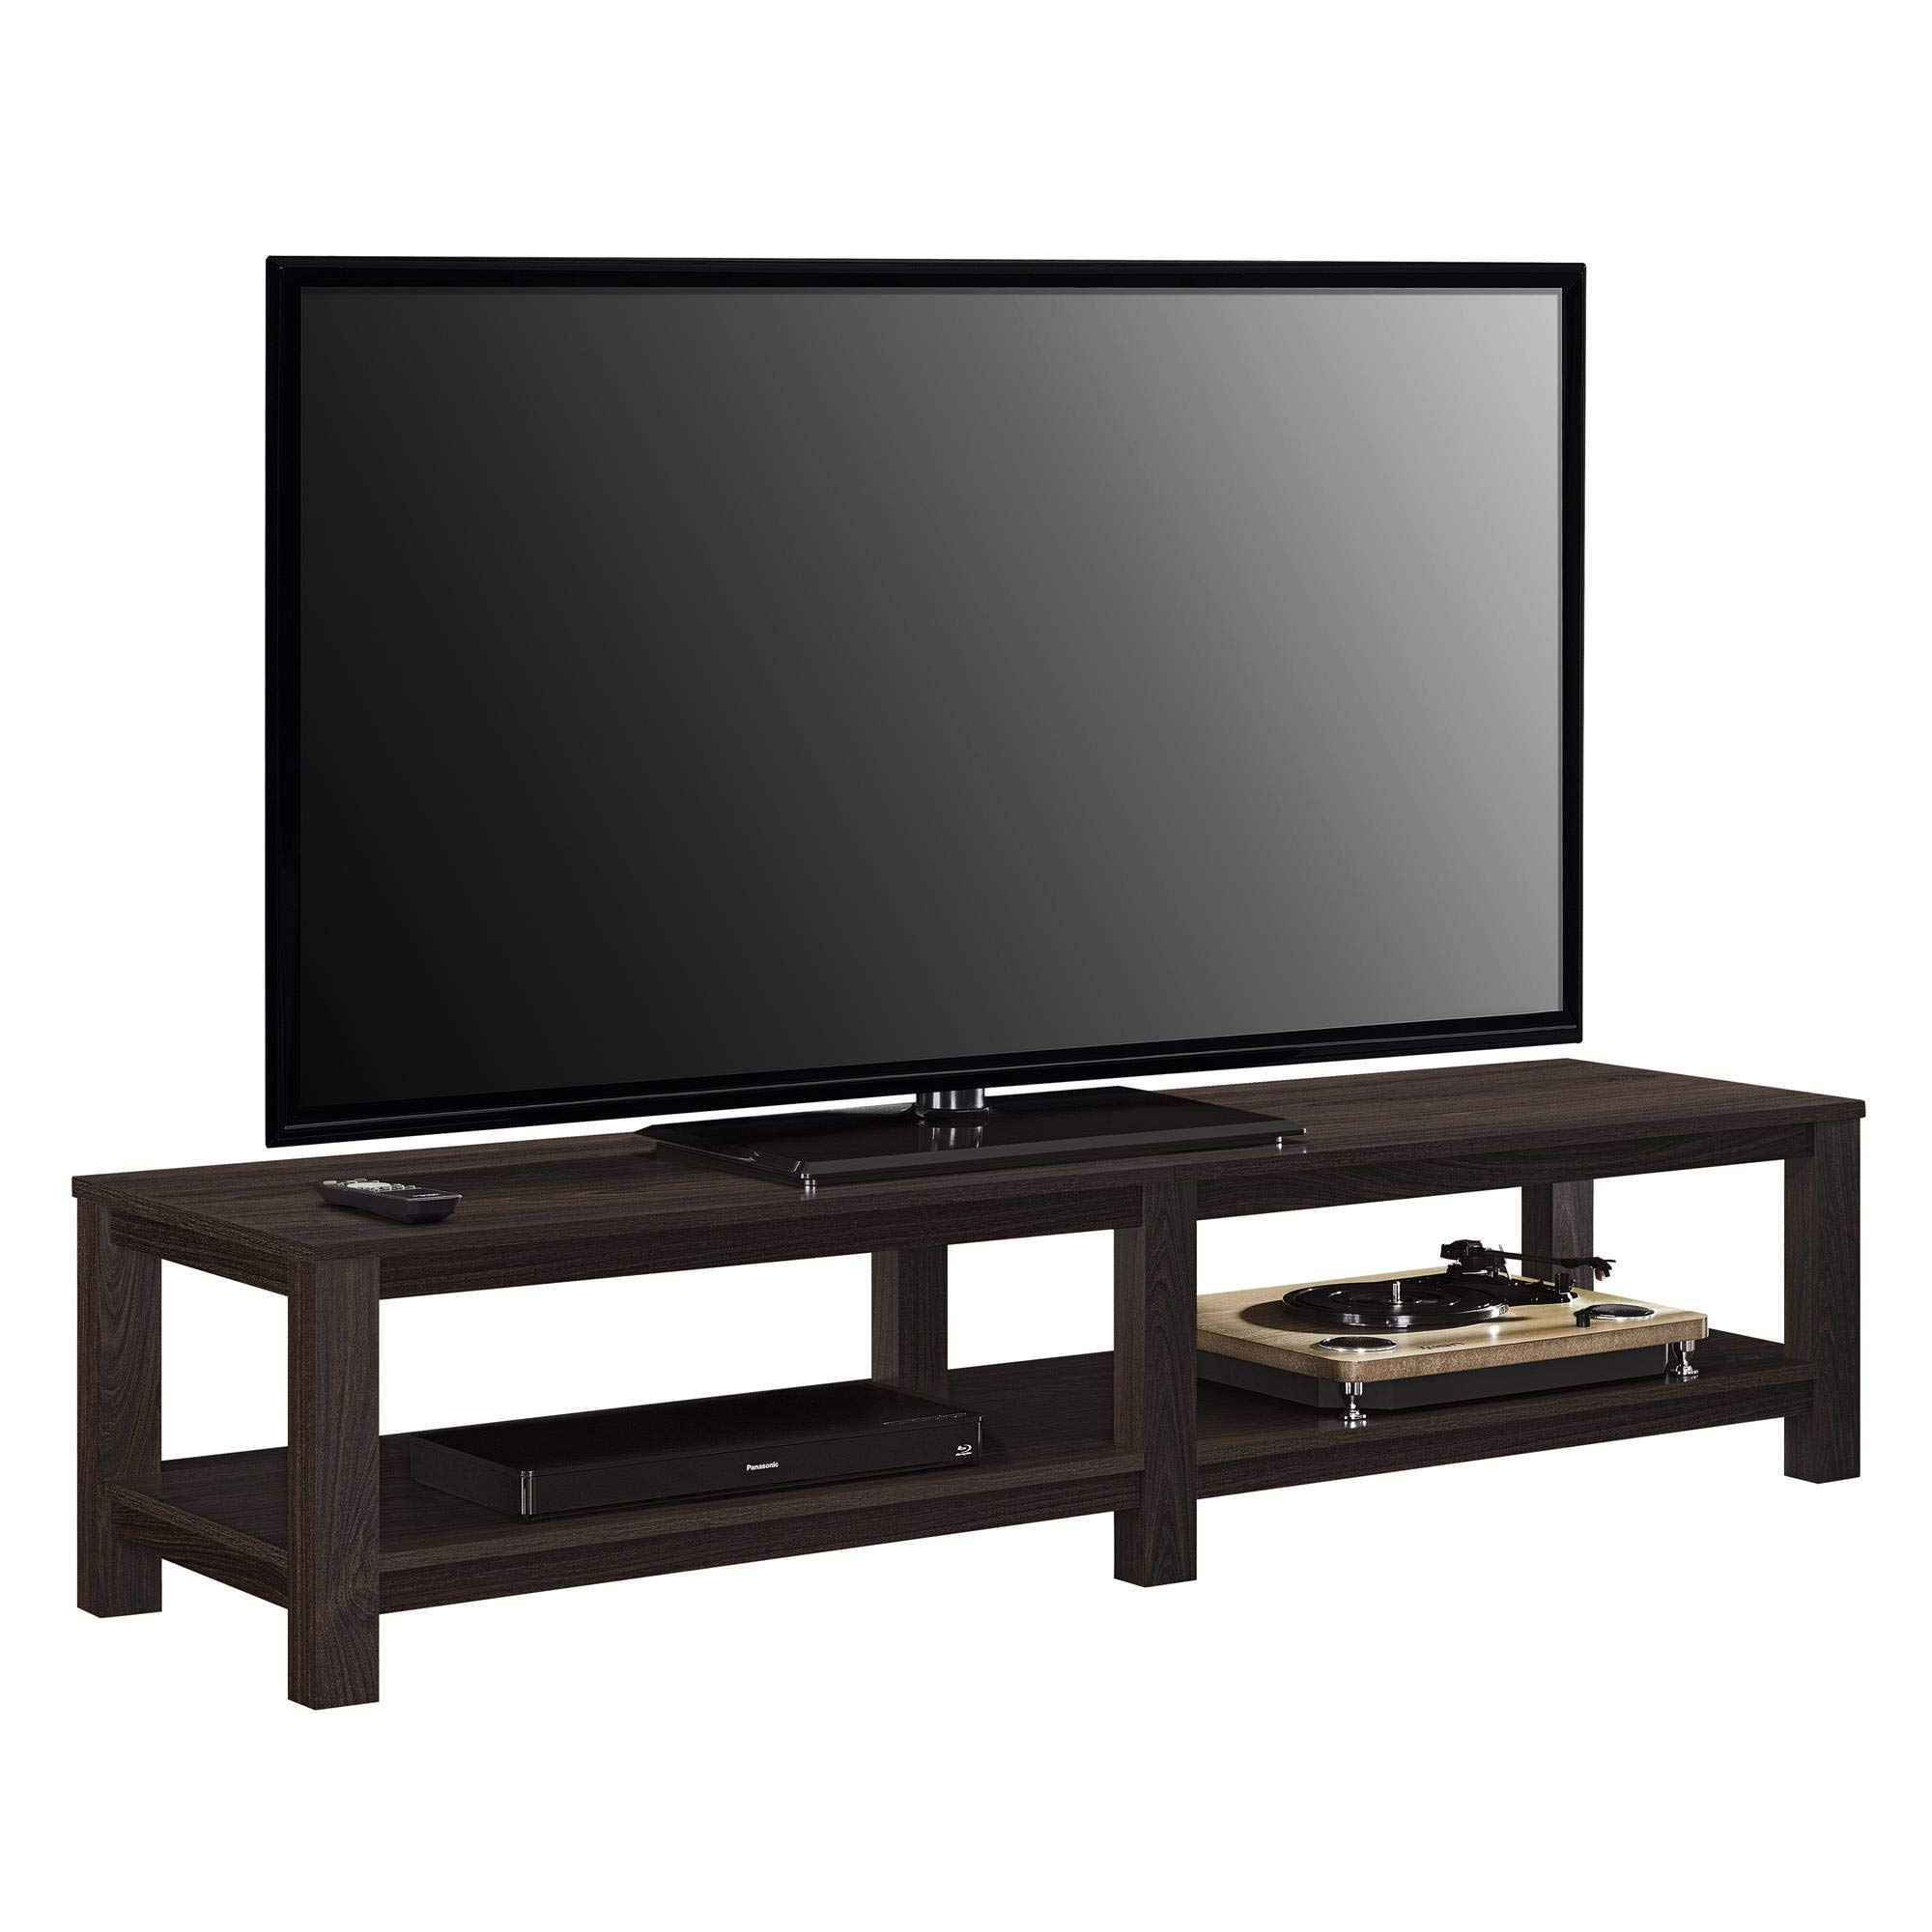 Ameriwood Basics Evelyn TV Stand for TVs up to 65'' (Espresso) by Ameriwood Home